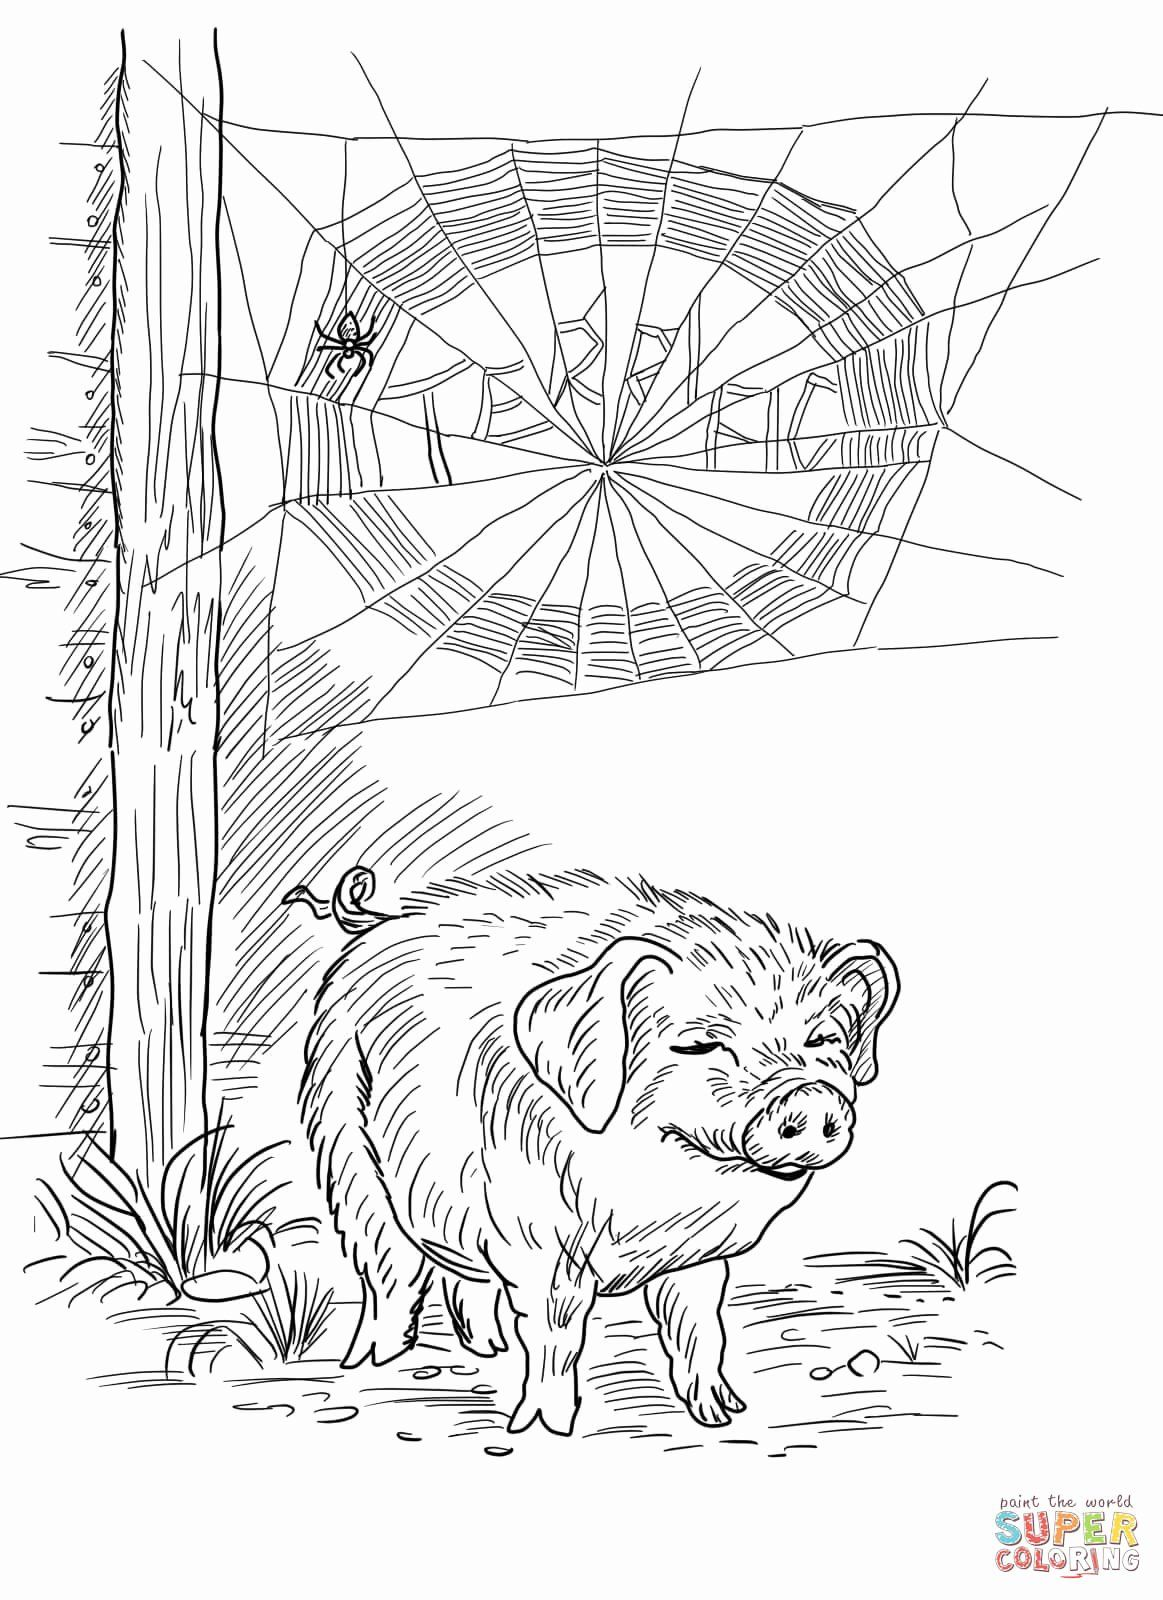 28 Charlottes Web Coloring Page In